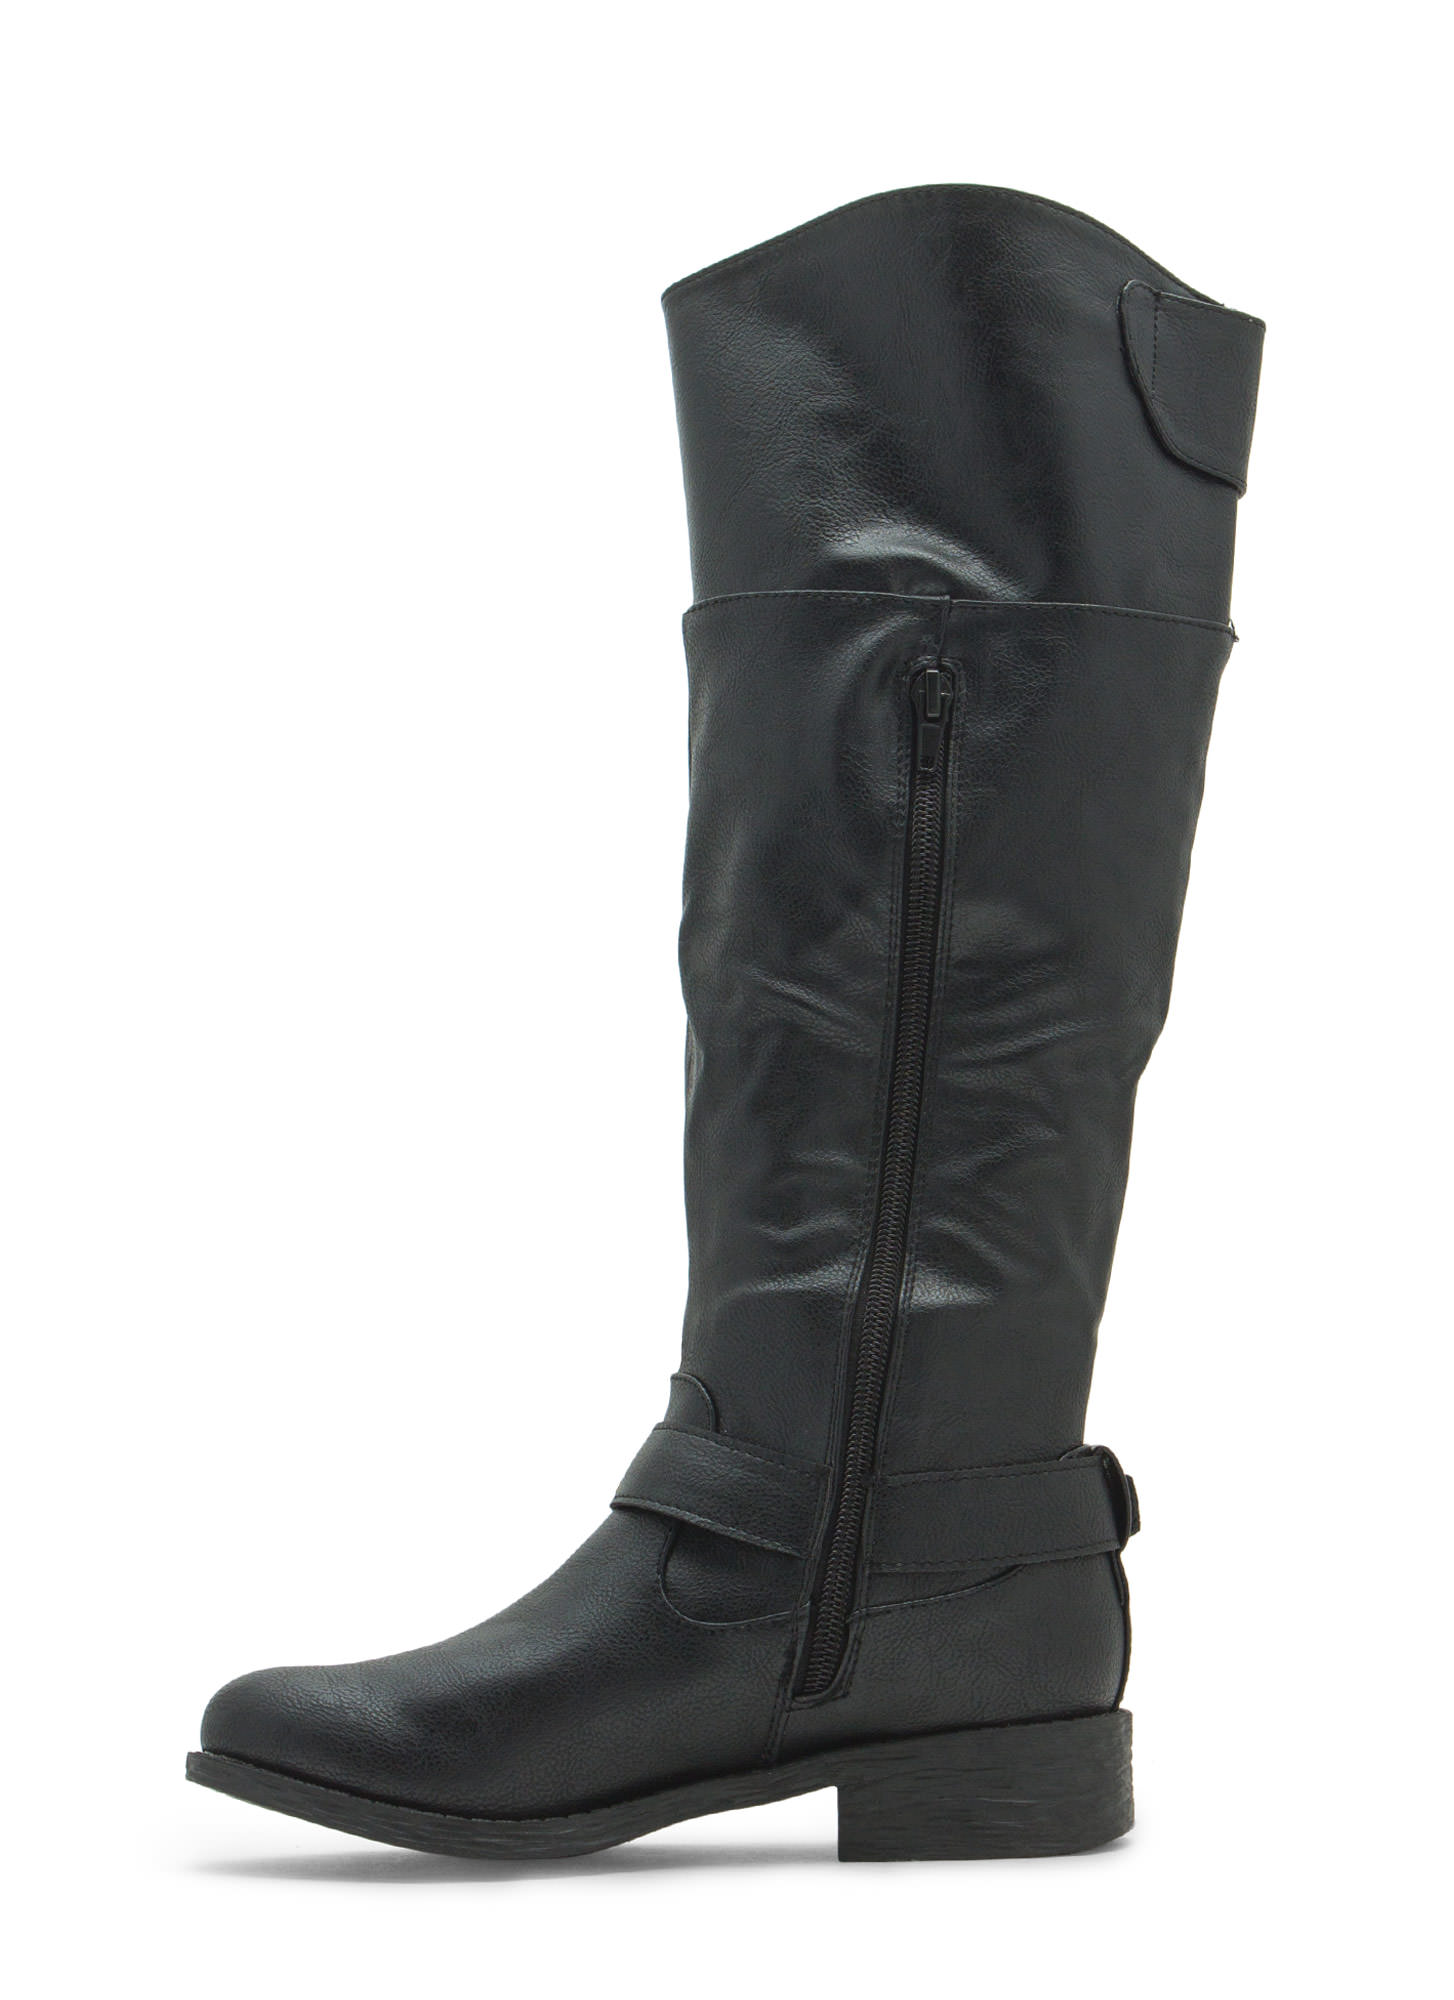 Time 2 Buckle Down Faux Leather Boots BLACK